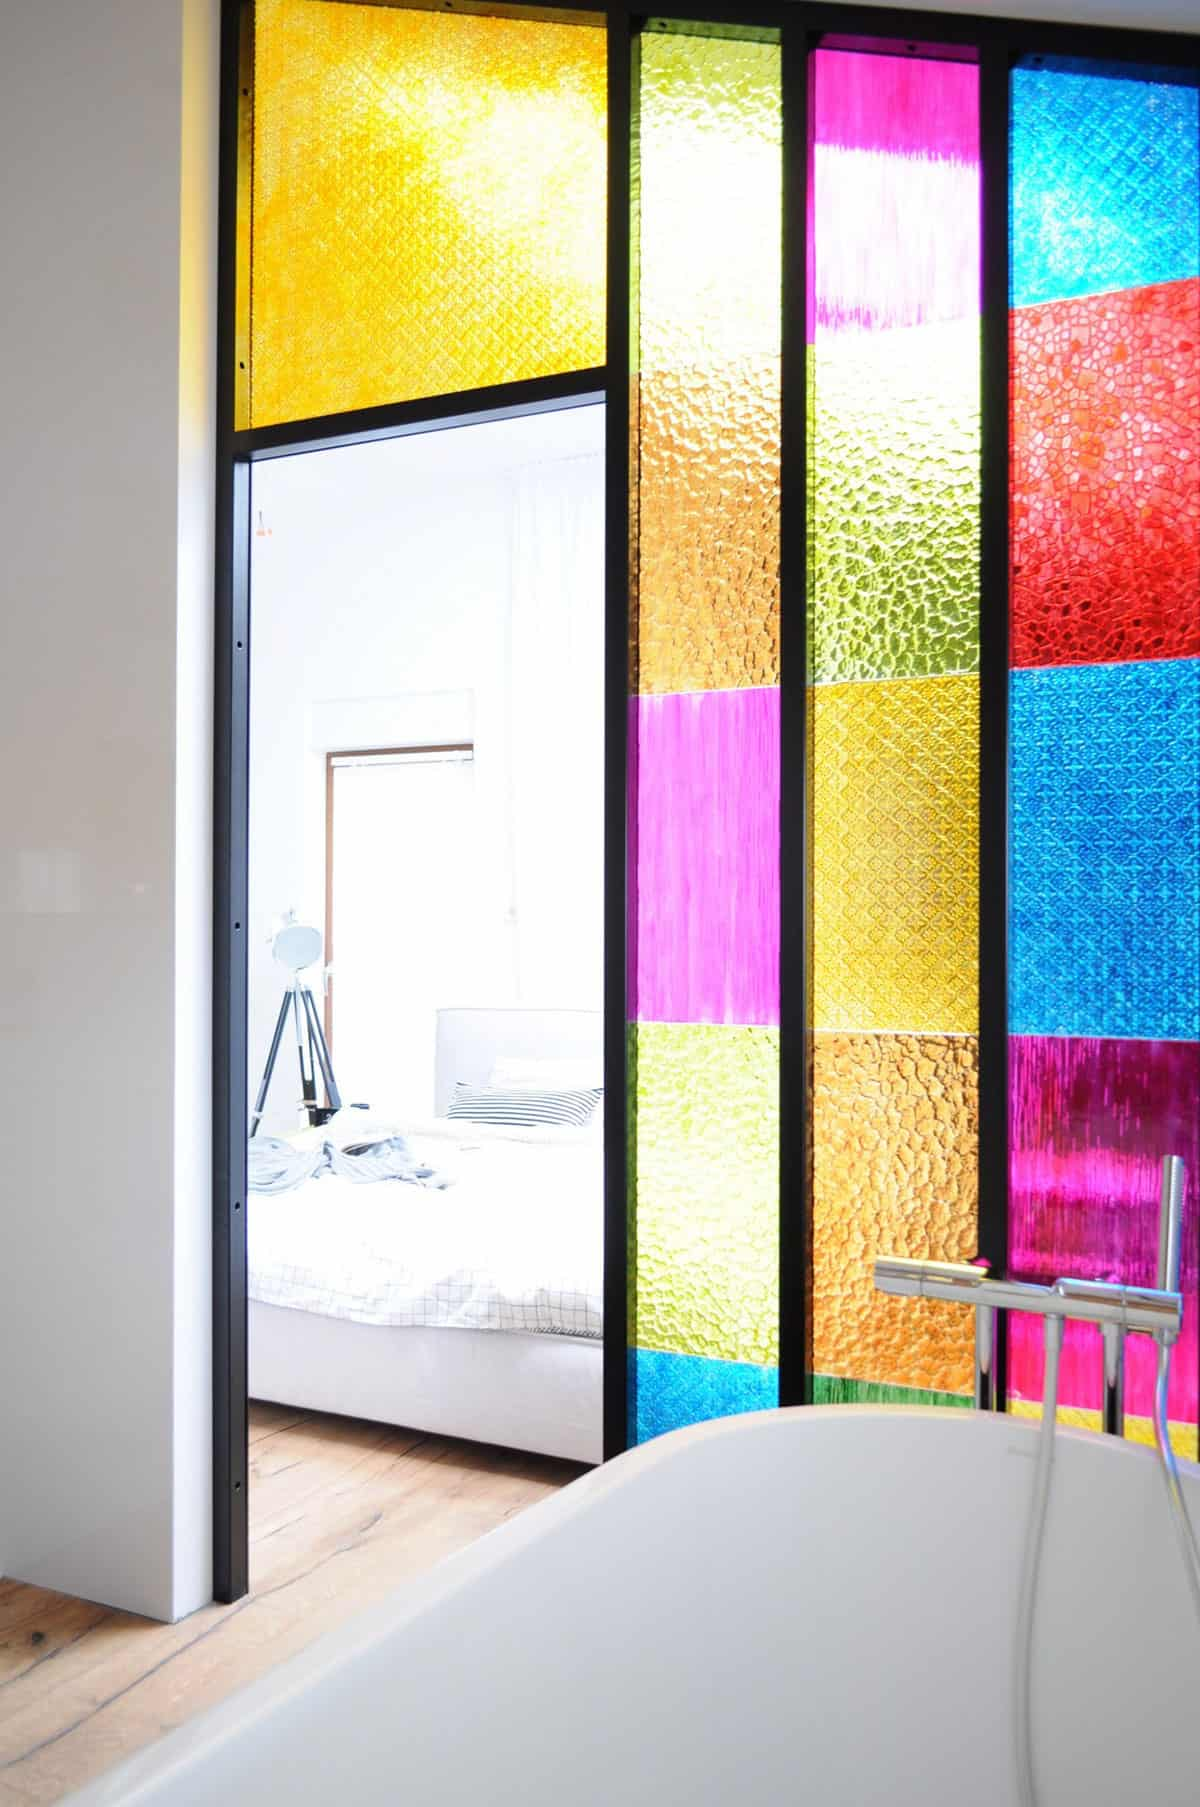 Bathroom partition panels - View In Gallery Bedroom Bathroom Partition In Colored Plastic Panels Wow 5